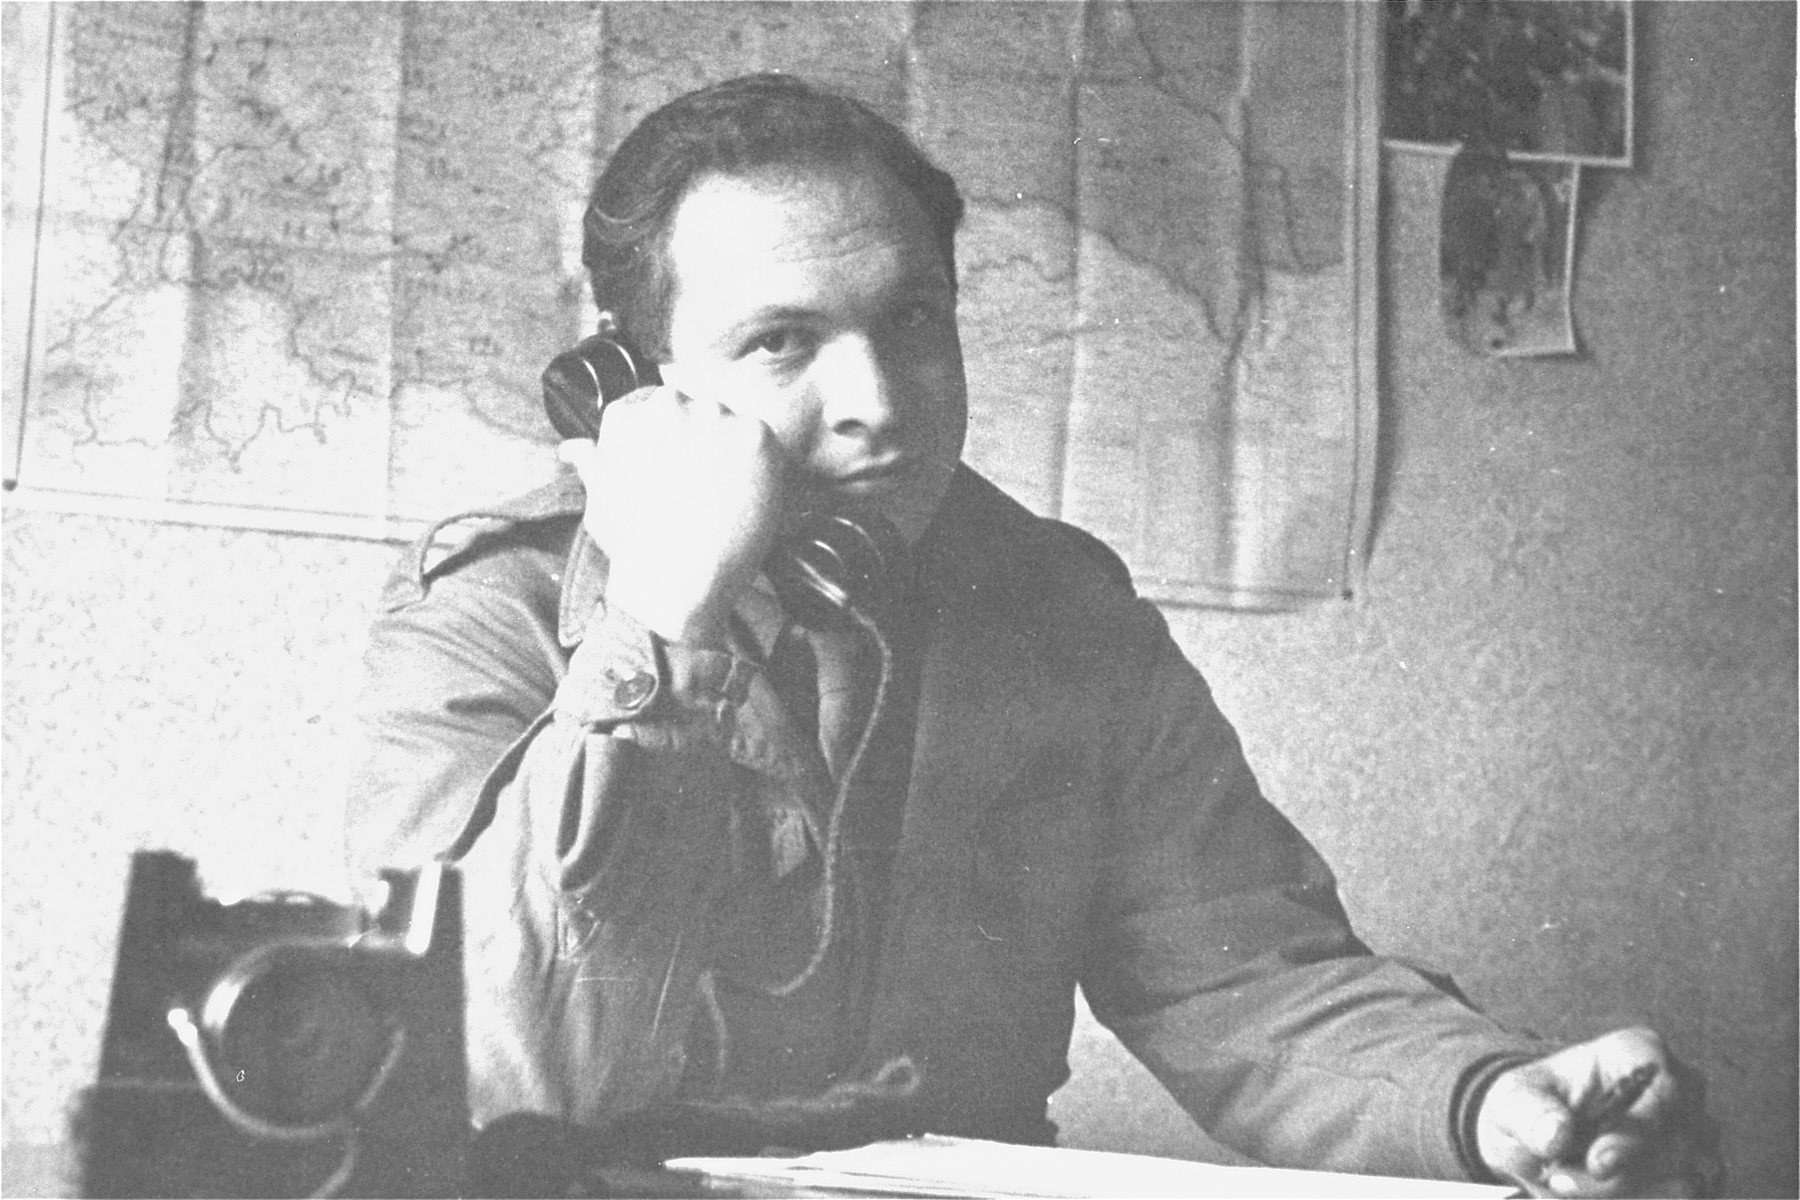 Saul Sorrin uses the telephone in his office at the Neu Freimann displaced persons camp.